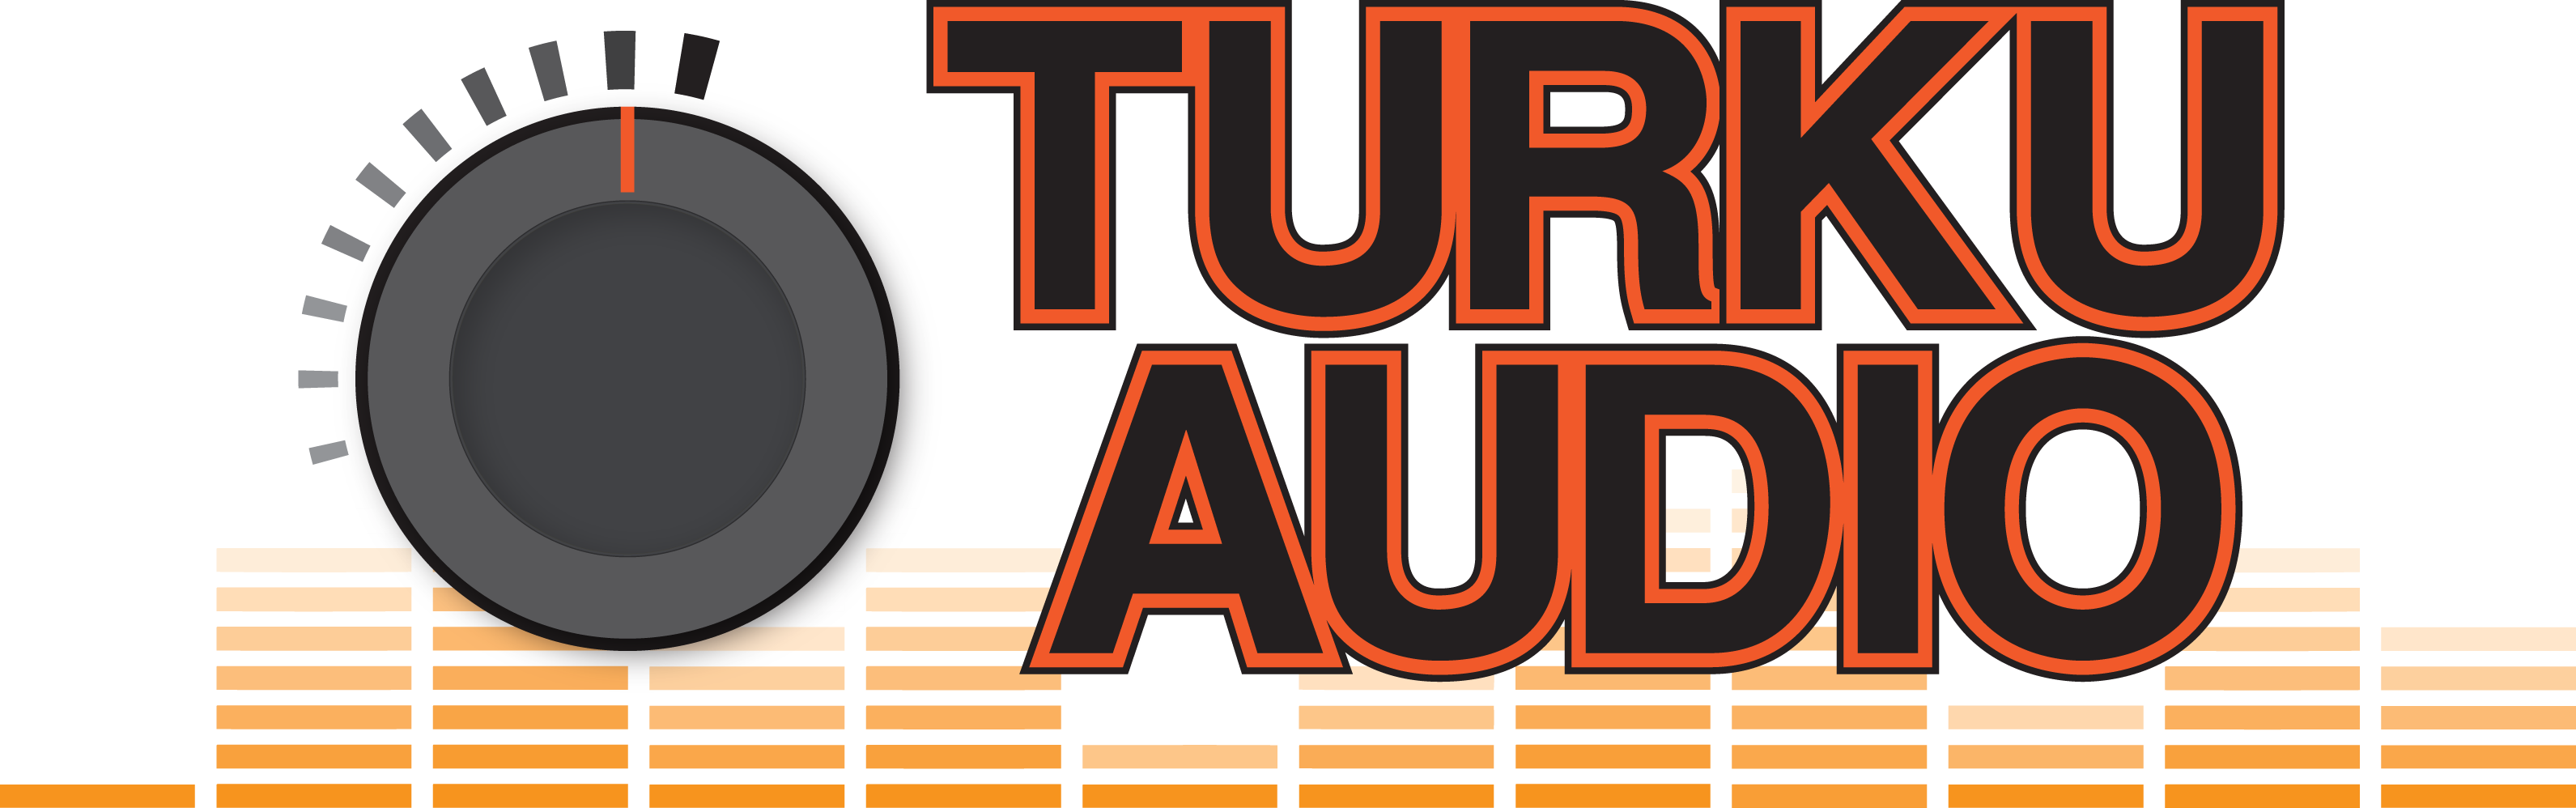 Turku Audio